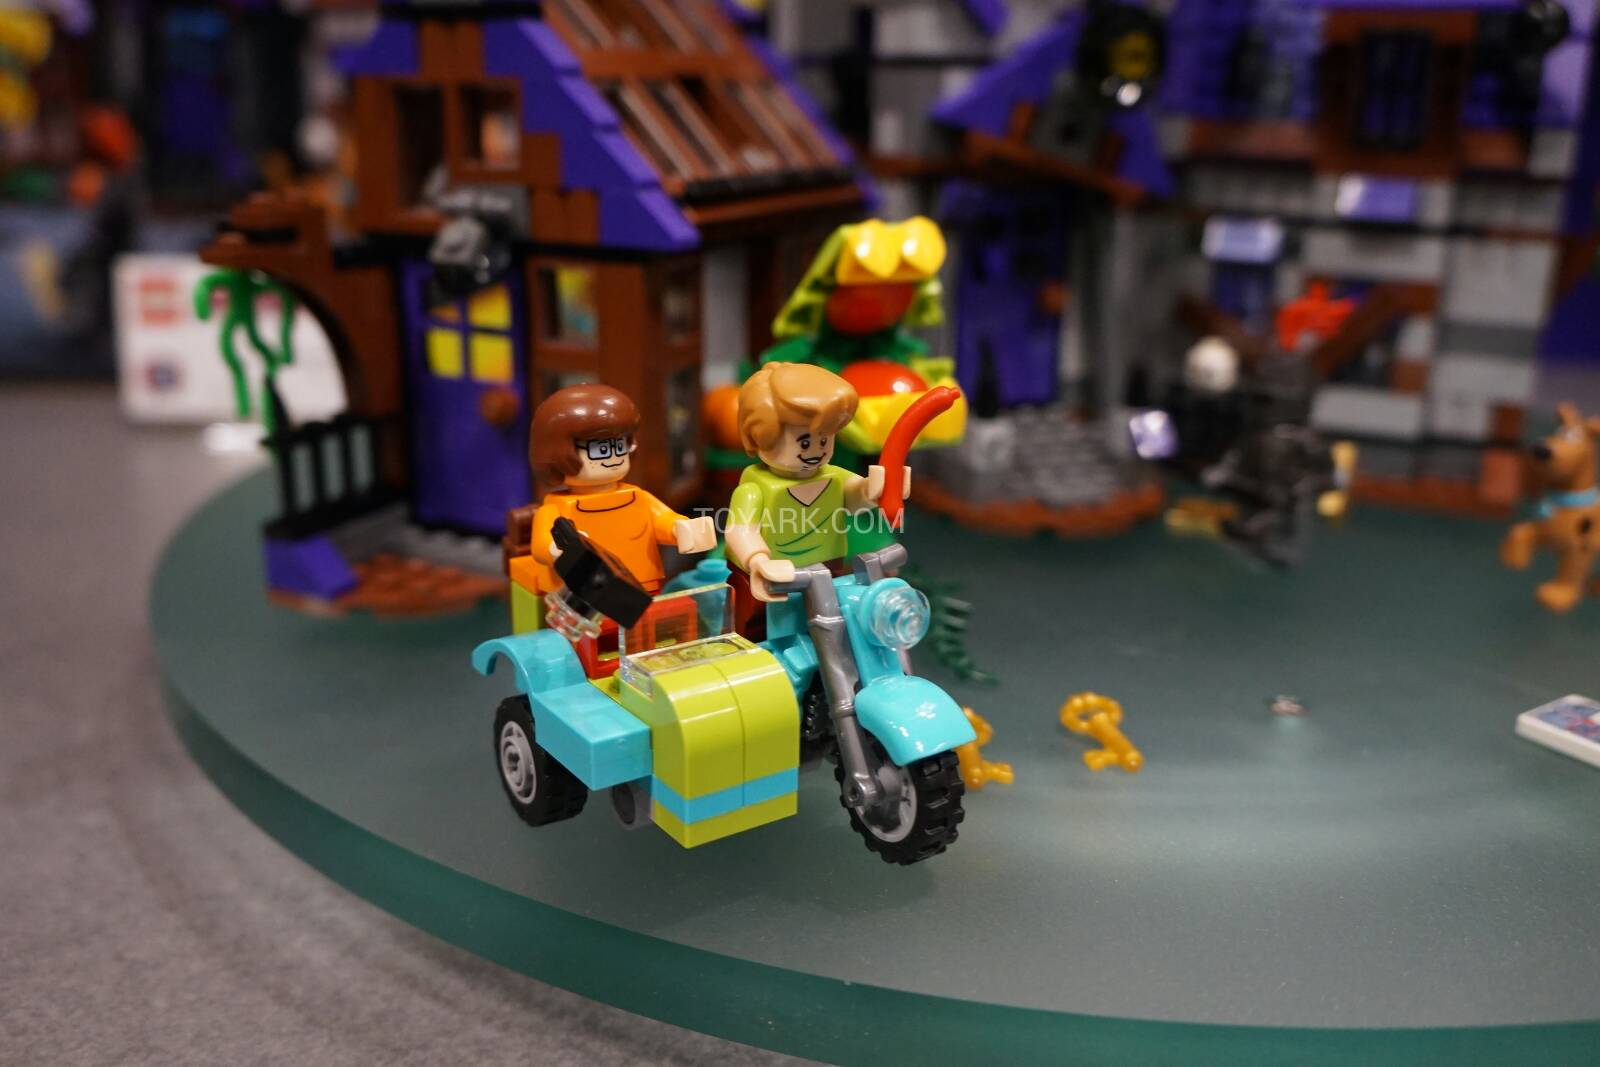 Toy-Fair-2015-LEGO-Scooby-010.jpg